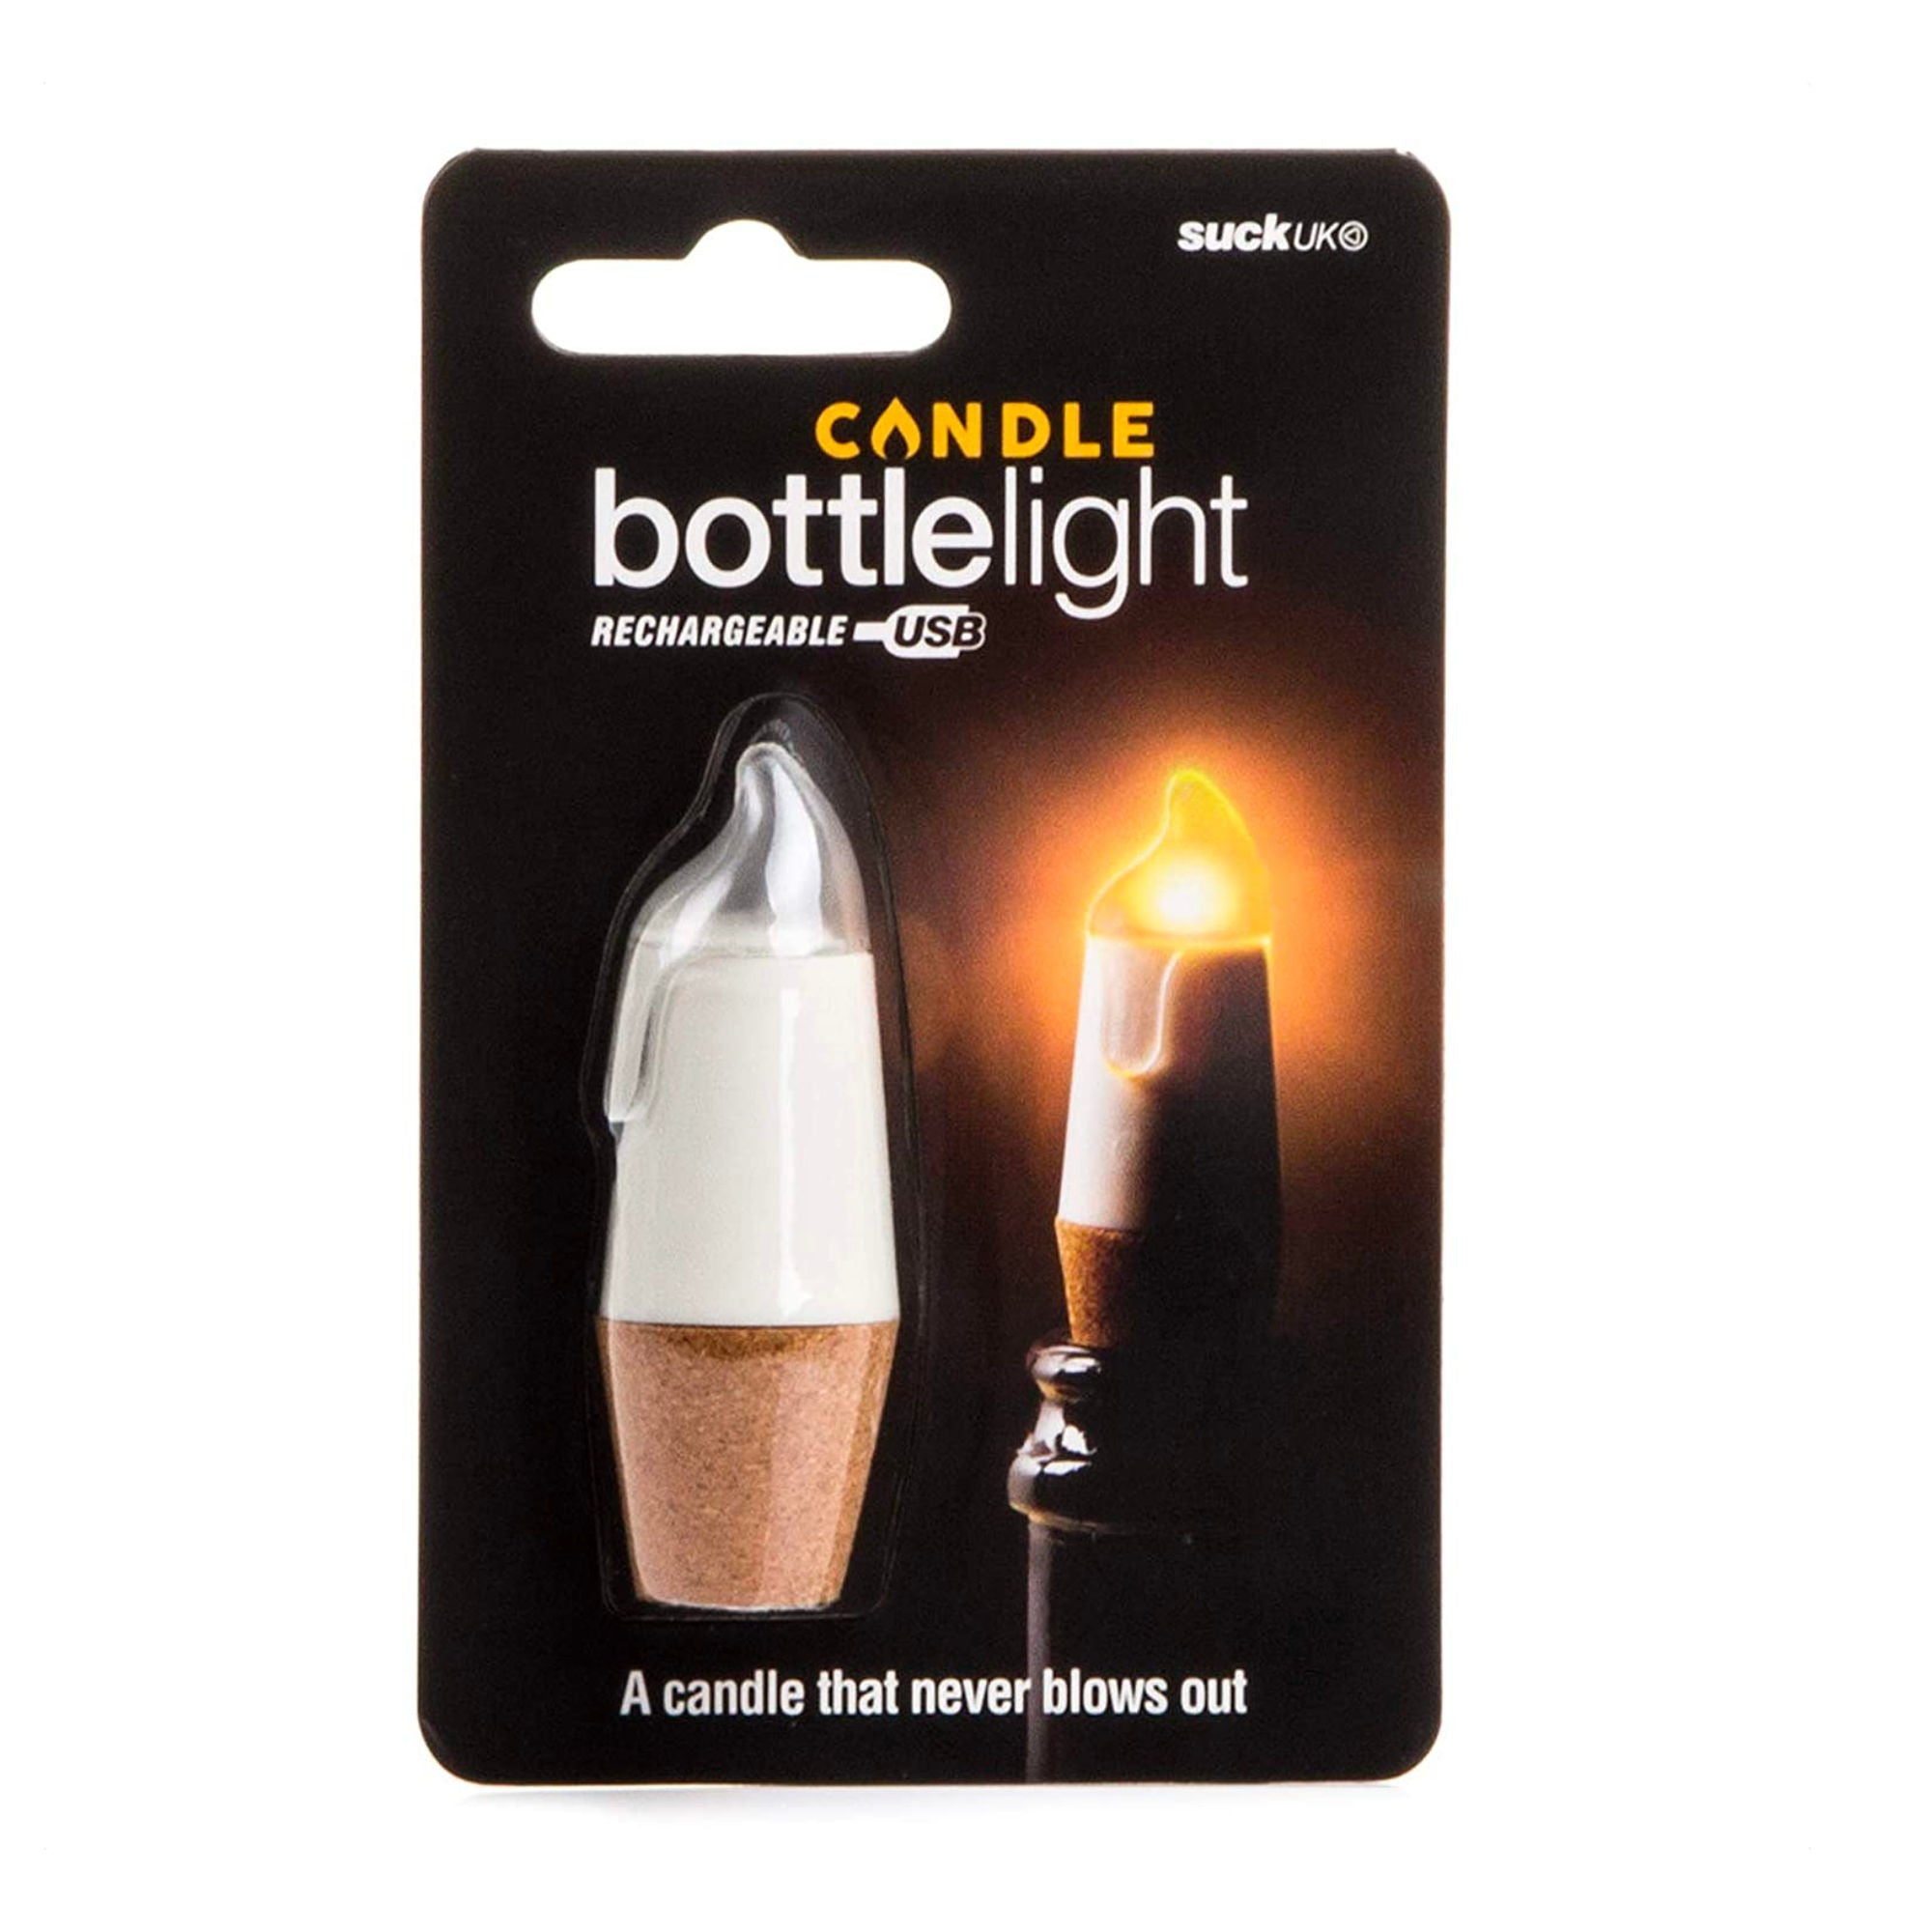 Suck UK Candle Bottle Light